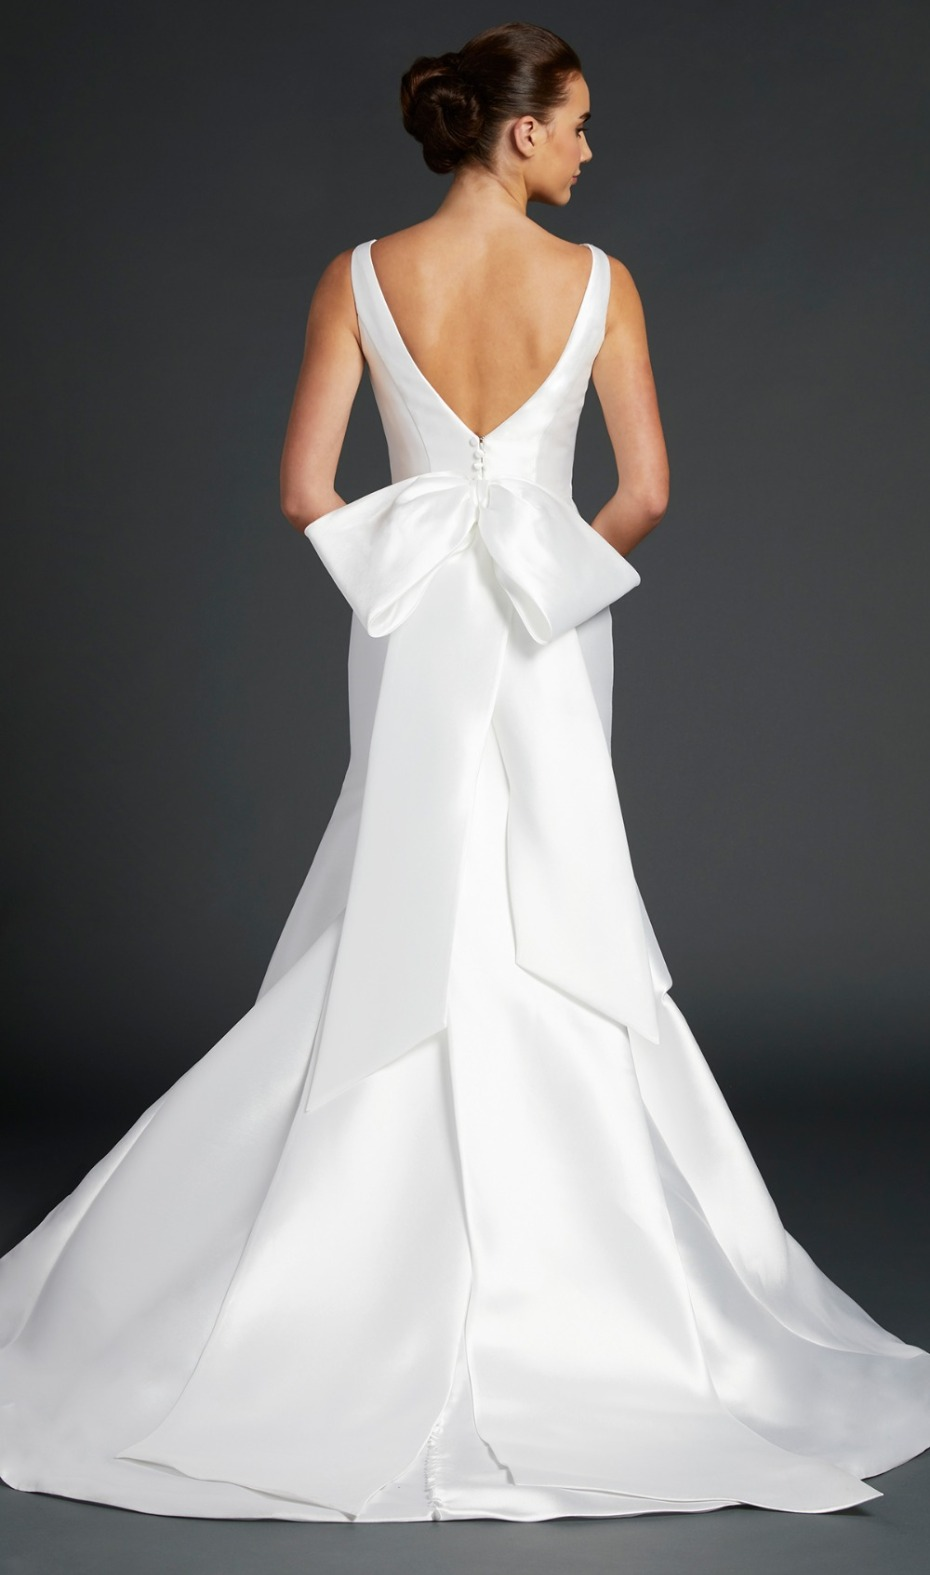 Anne Barge New 2019 Gown with Bow Back Detail